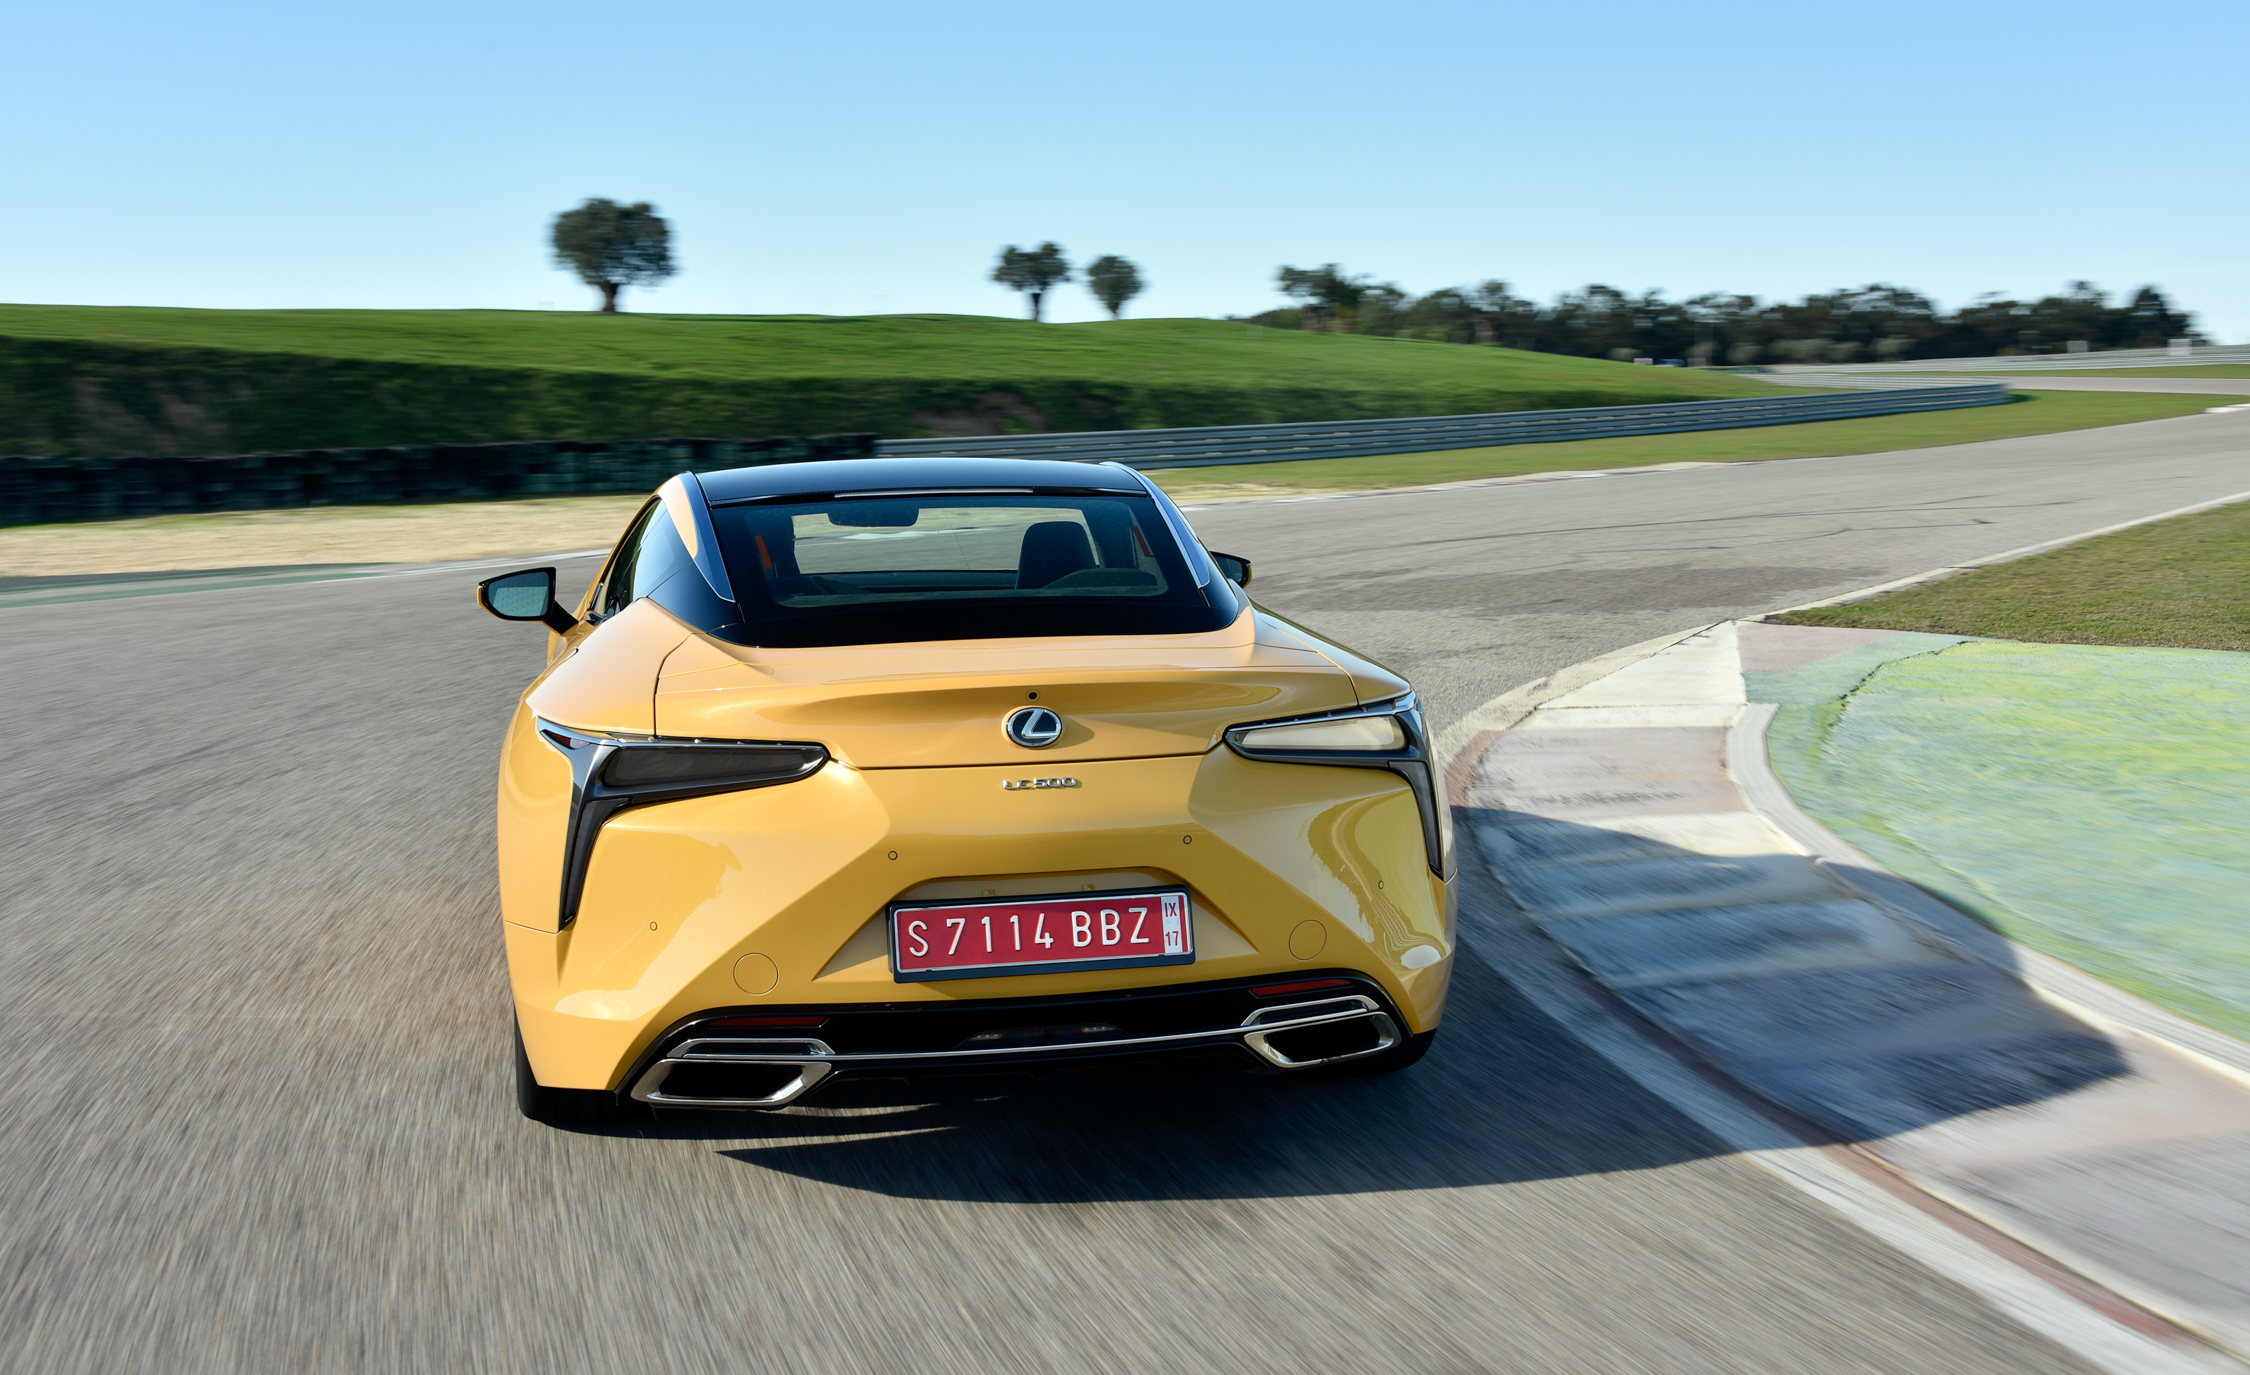 2018 Lexus Lc 500 Performance Rear View (Photo 16 of 84)